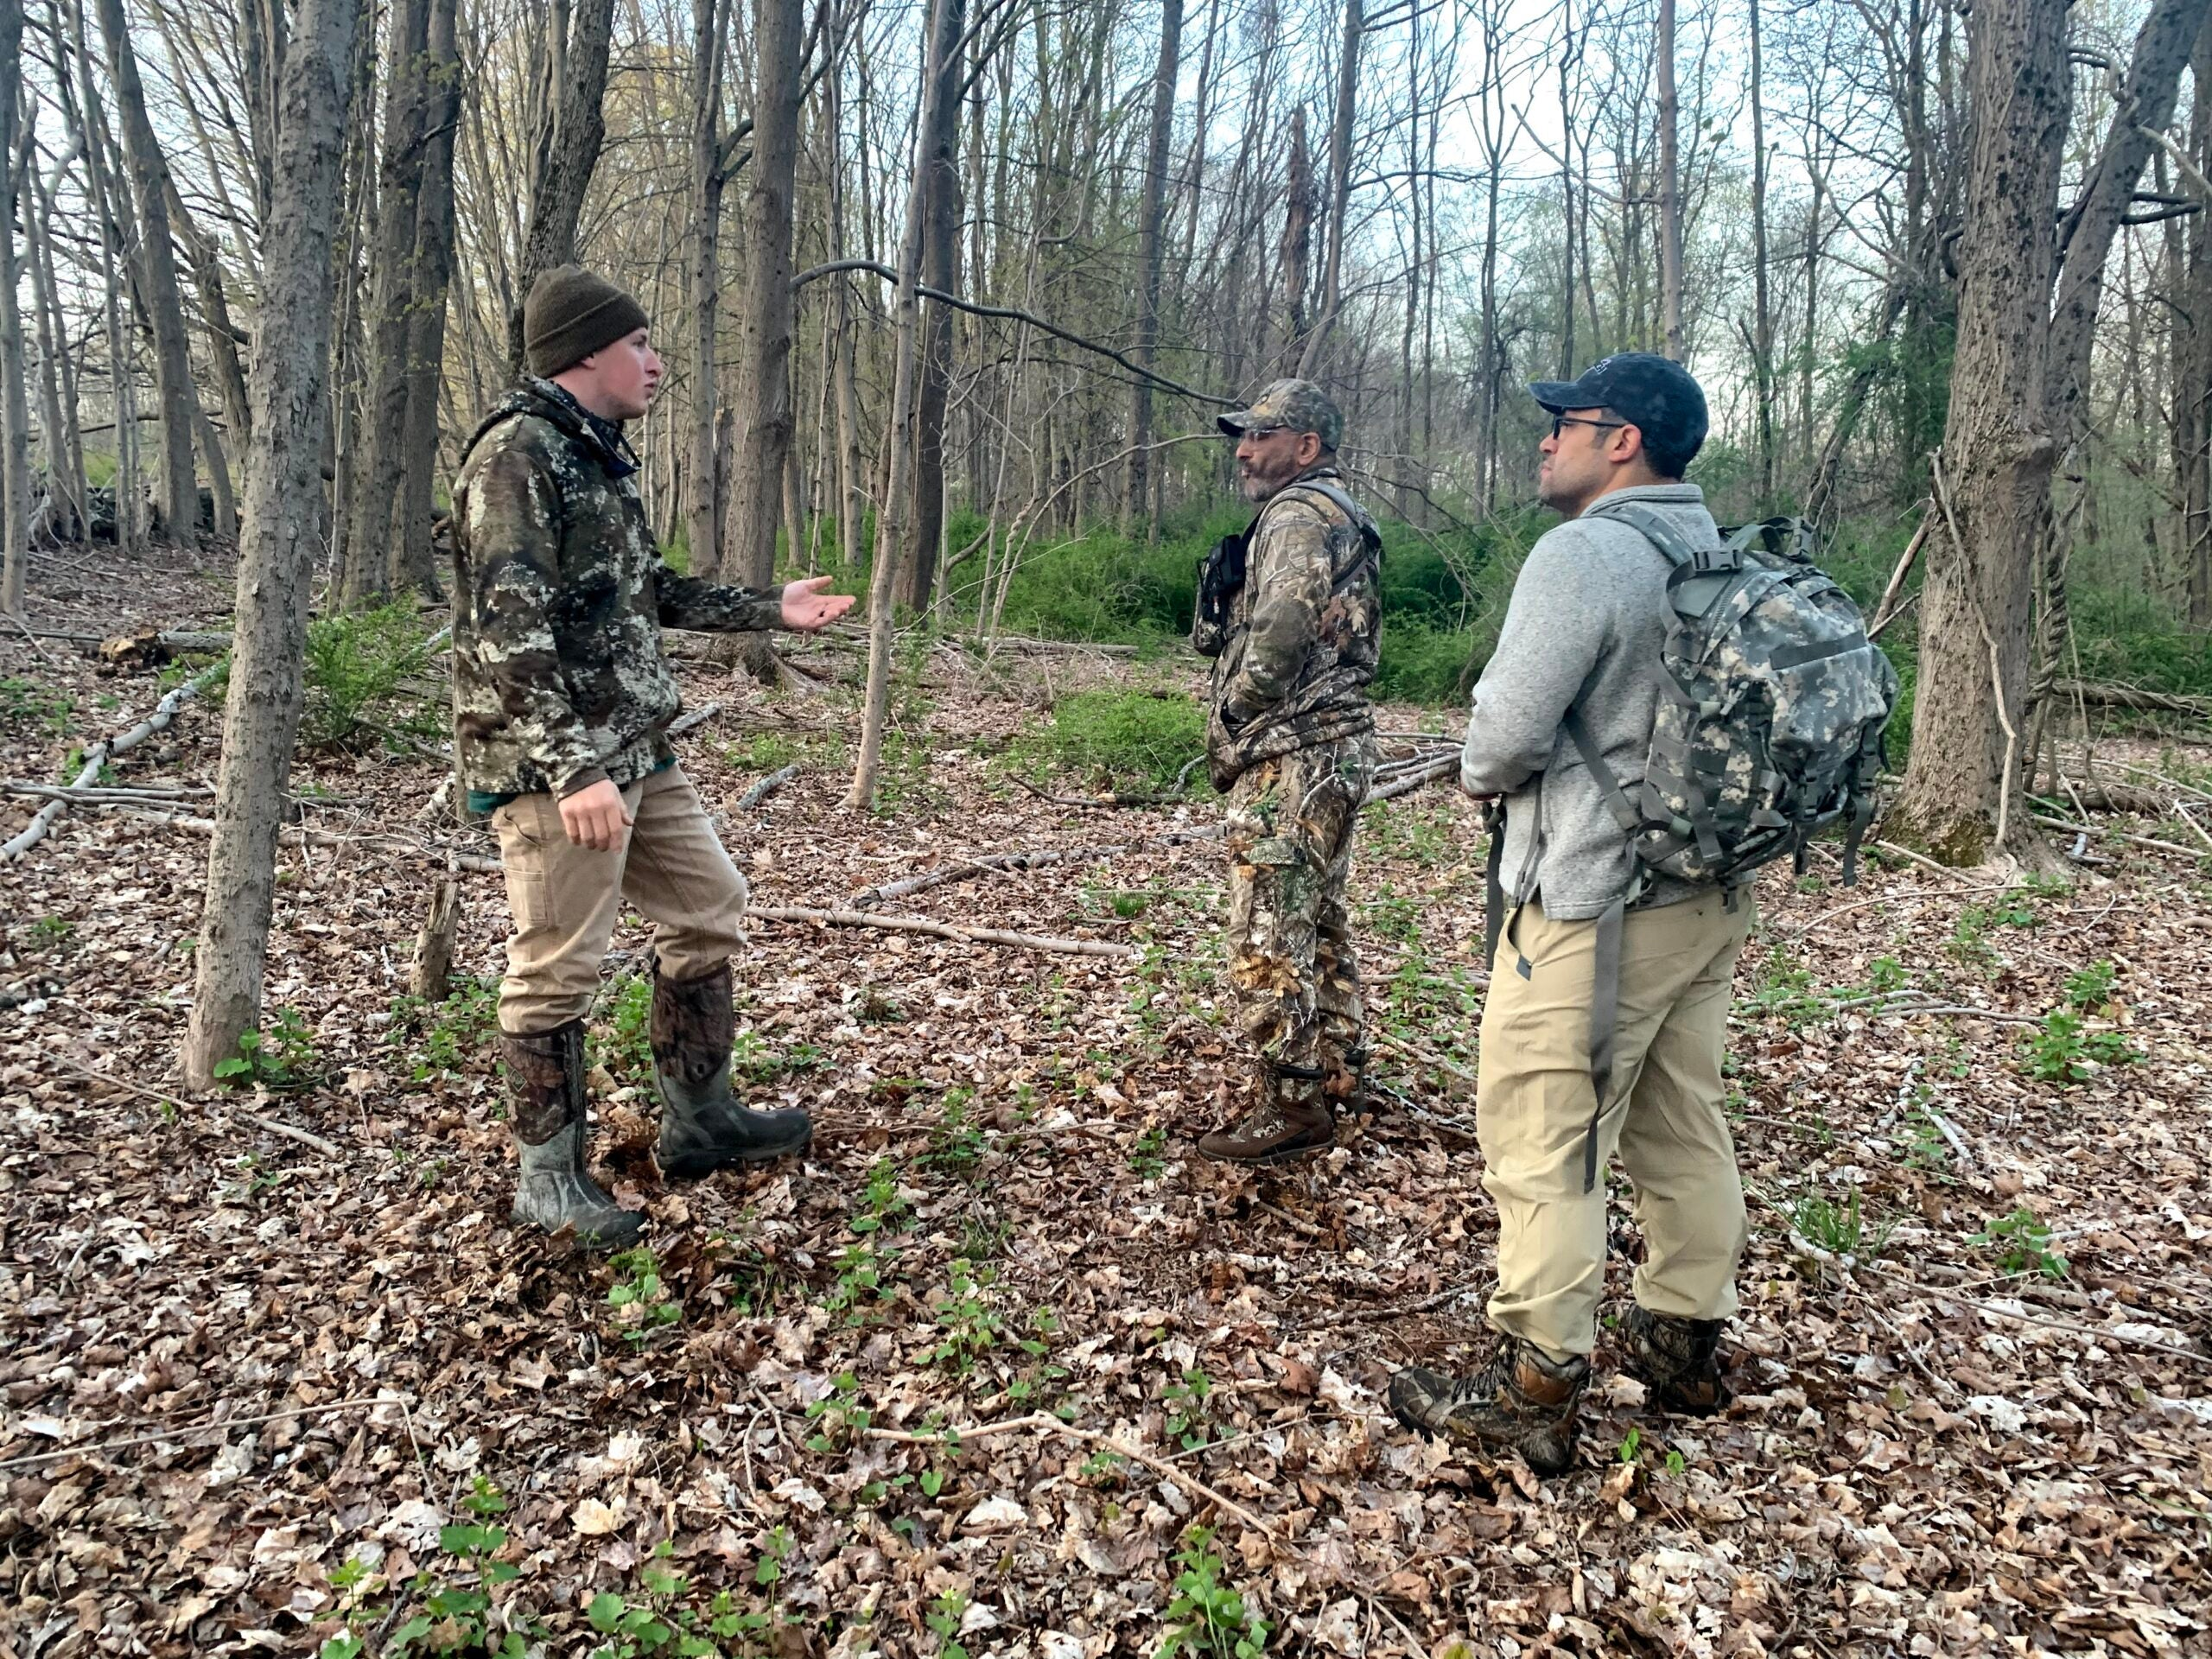 Having a hunting mentor is a big help, but the first solo season can be tough.